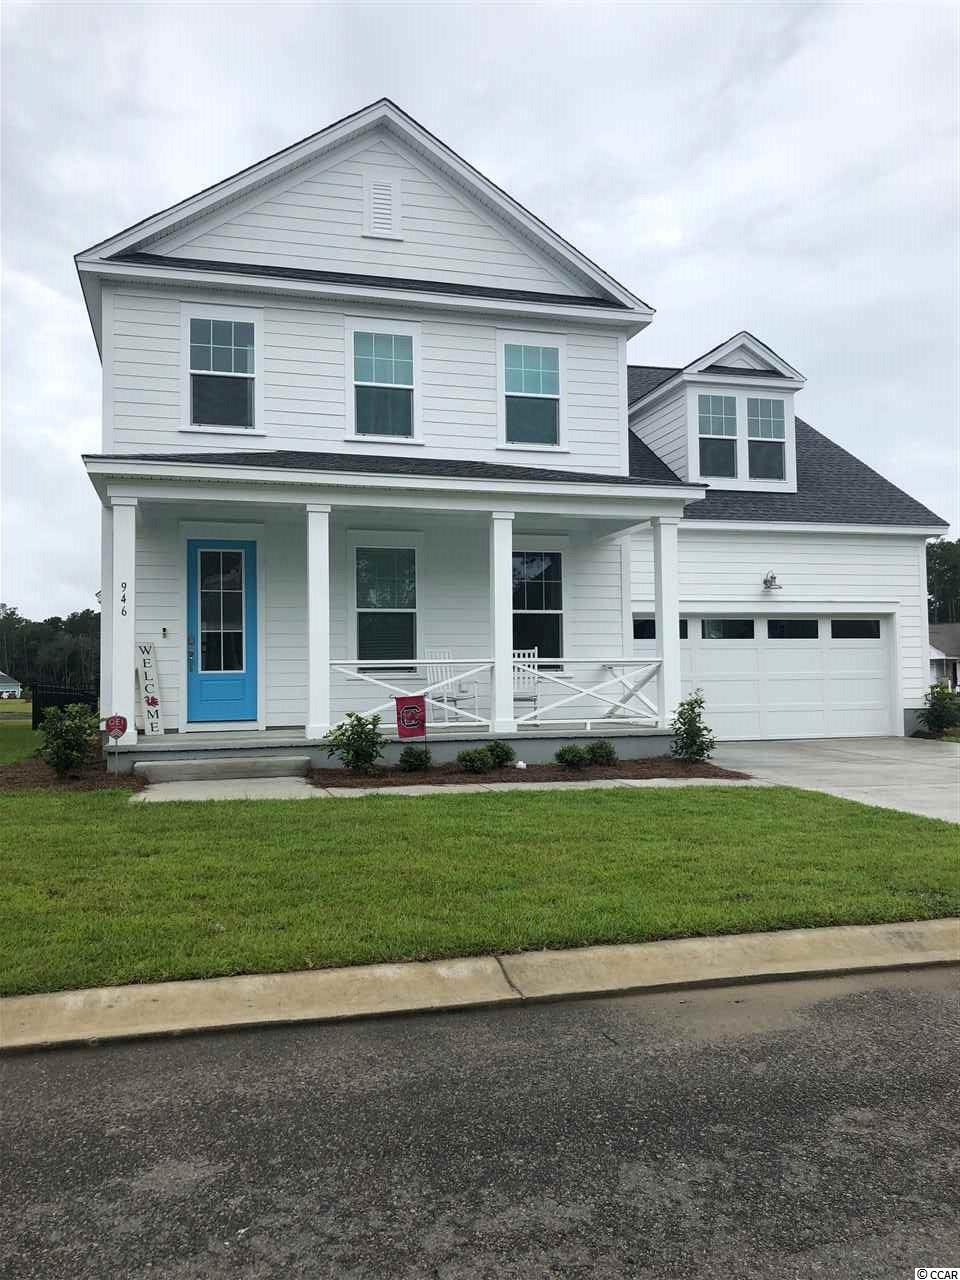 This popular Pritchard Plan offers four bedrooms and two full baths, and one half bath.  Design features are extensive and a must see! Longwood Bluffs is located in Murrells Inlet and part of the Prince Creek Master Planned Community. Offering natural gas, this community is conveniently located approximately 5 miles from the ocean, 3 miles from Murrells Inlet Marshwalk for boating, restaurant, fishing, local events, & relaxing. Brookgreen Gardens is 8 miles away, and retail and grocery shopping only a short drive. Don't forget the nearby award-winning PGA TPC Golf Course where you can golf or just dine for breakfast or lunch with spectacular golf course views. Homeowners have access to the Prince Creek West Amenity Center (The Park) where they can enjoy the fabulous nature trail, kiddie pool, tennis courts, playground, outdoor covered pavilion with fireplace, and grilling area.